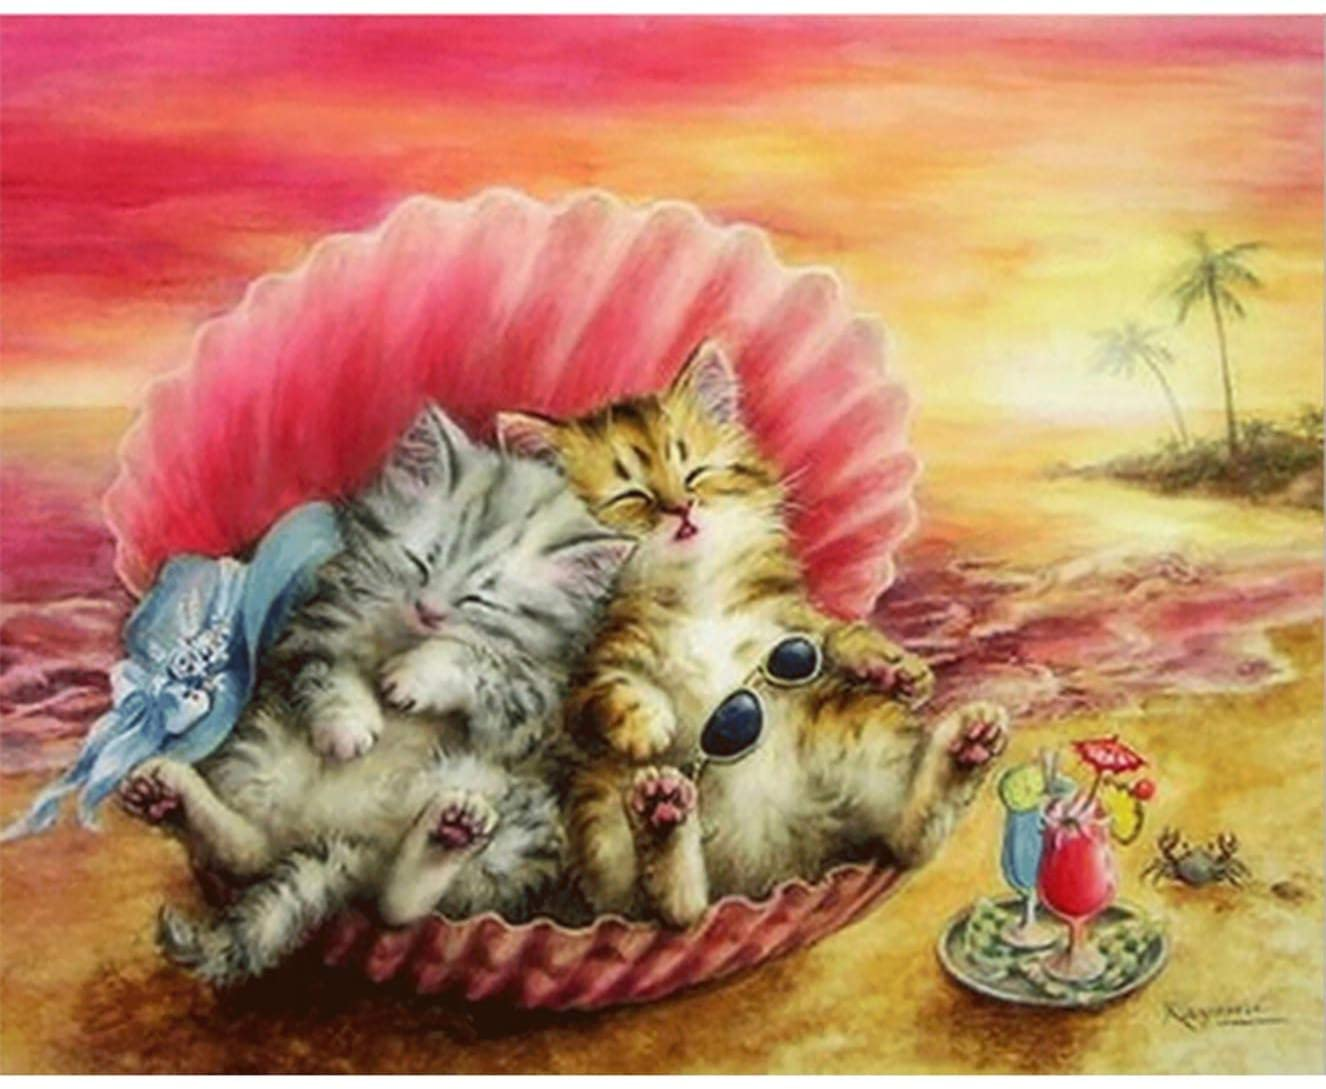 Bimkole DIY 5D Diamond Painting Kit Cat Sunset Beach by Number Kits Paint with Diamonds Arts DIY for Home Decor, 12X16 inch(m3-519)